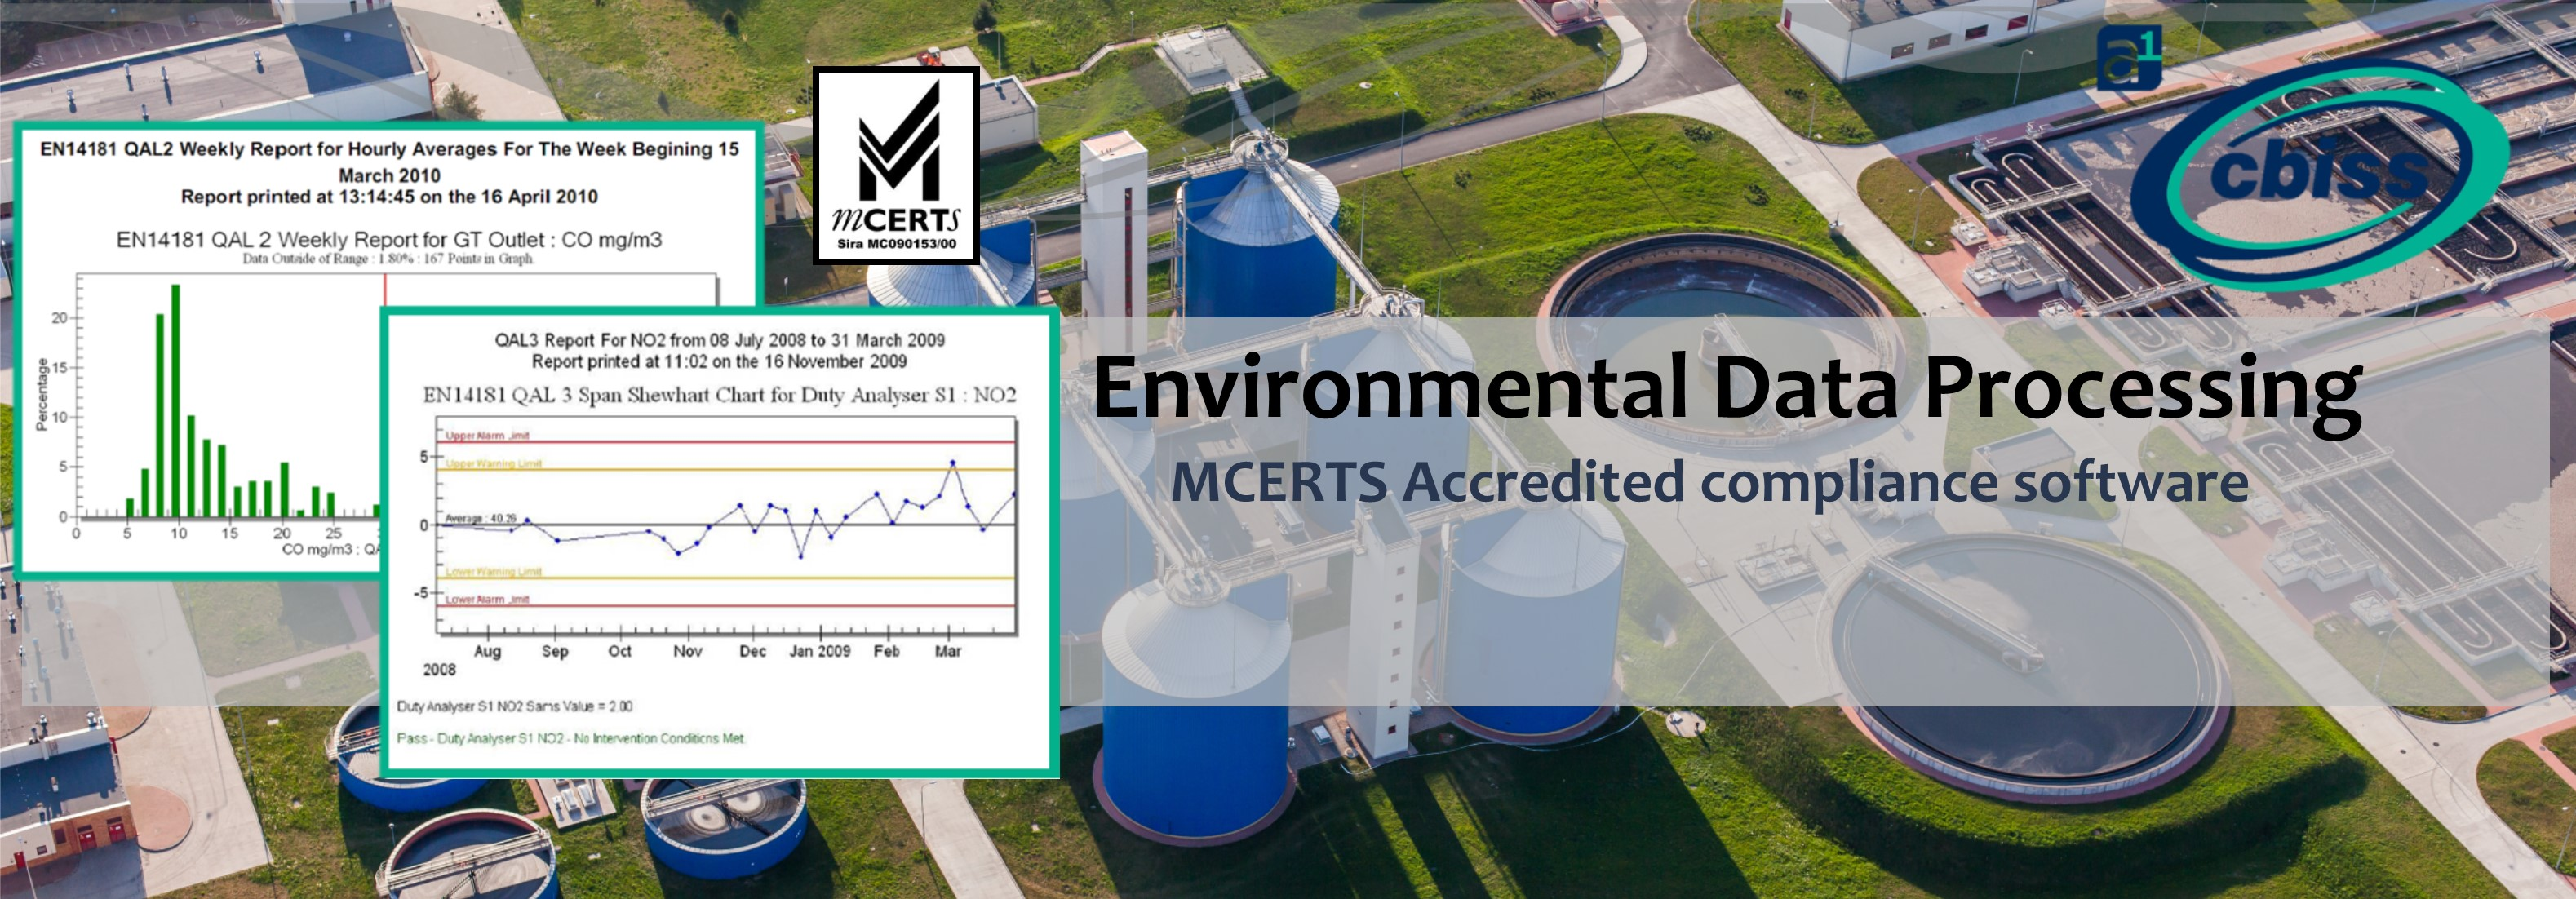 cdas-mcerts accredited-v2